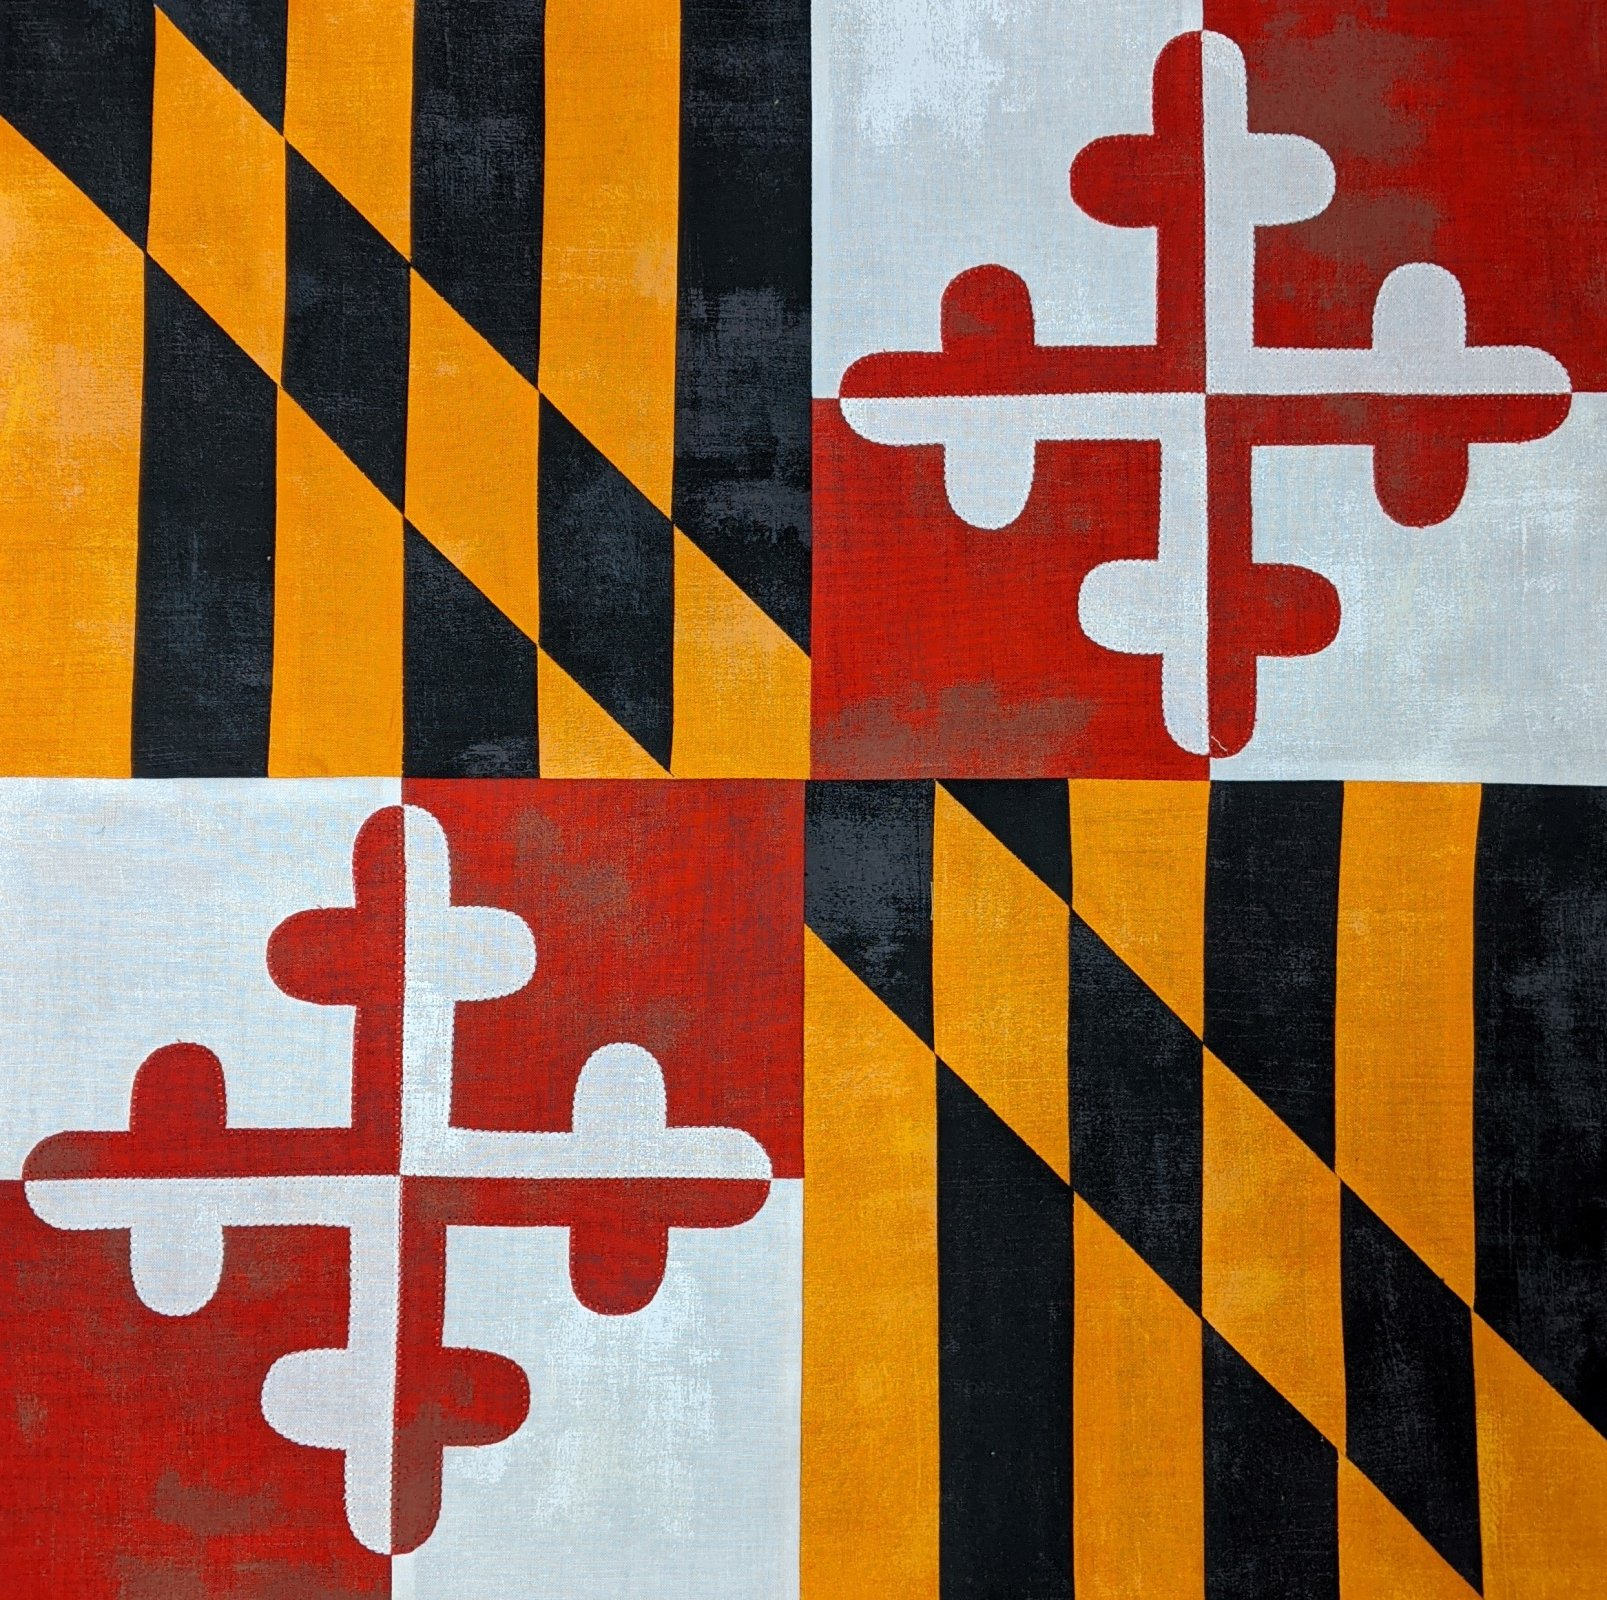 Maryland Flag Wallhanging or Table Topper Kit